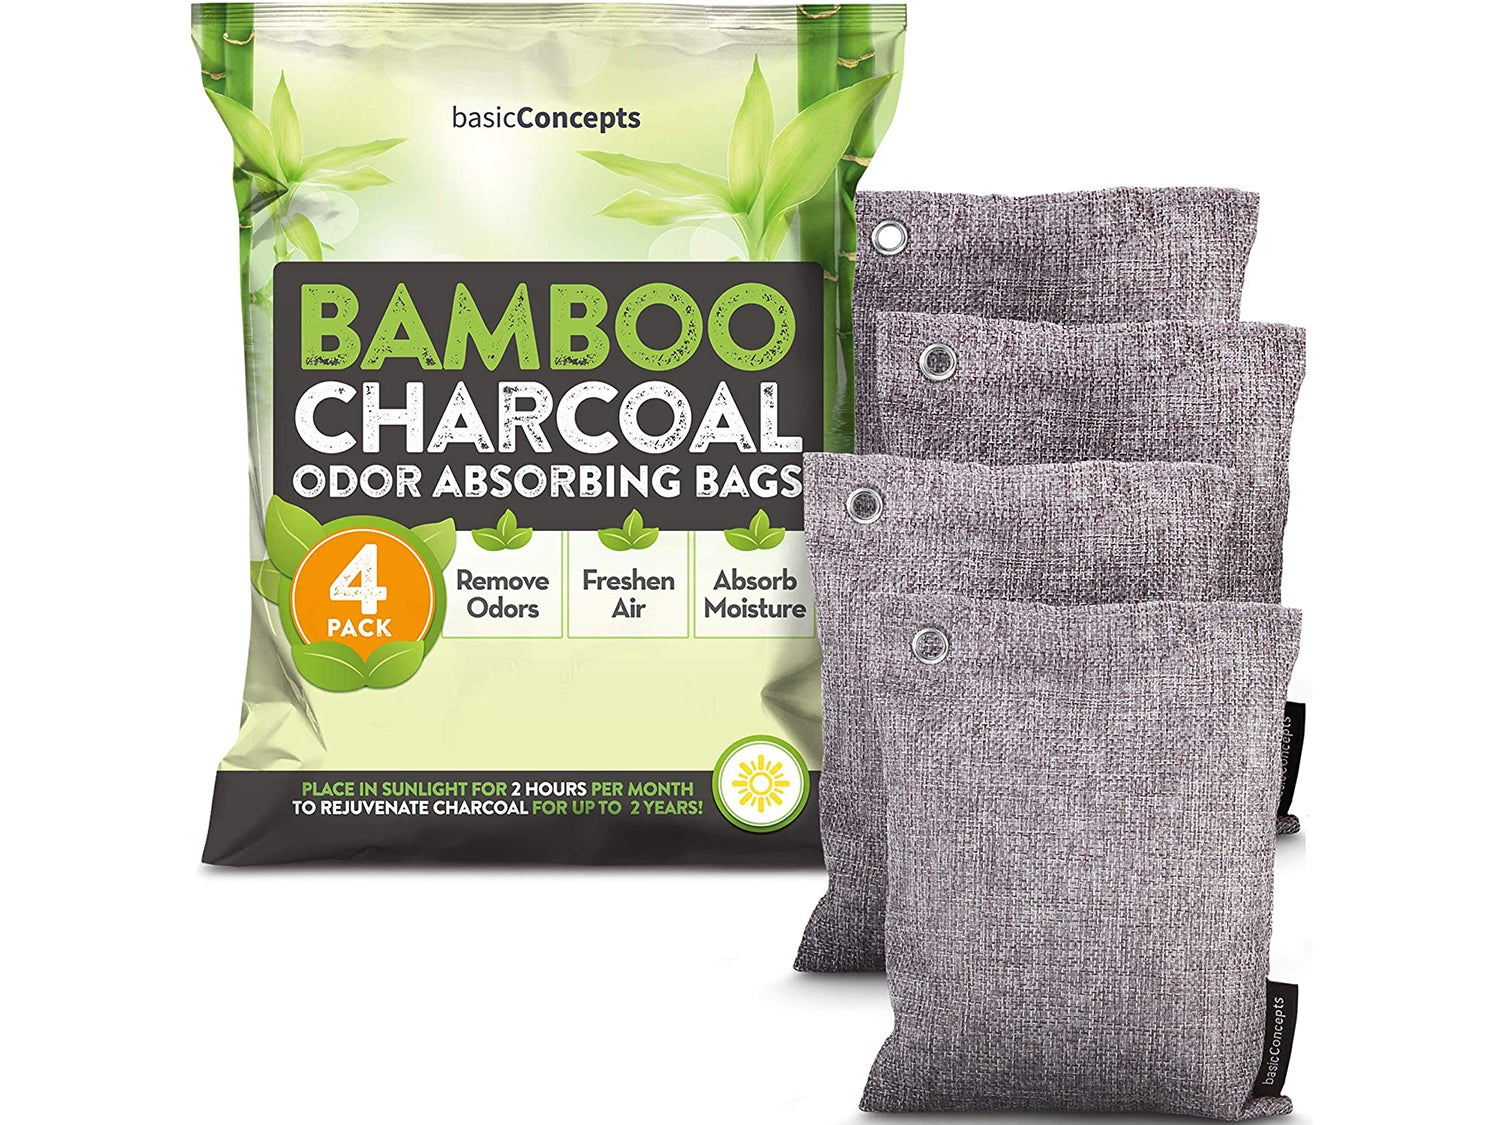 Bamboo Charcoal Air Purifying Bags (4 Pack), Charcoal Bags Odor Absorber for Home and Car (Pet Friendly) - Charcoal Air Purifying Bags